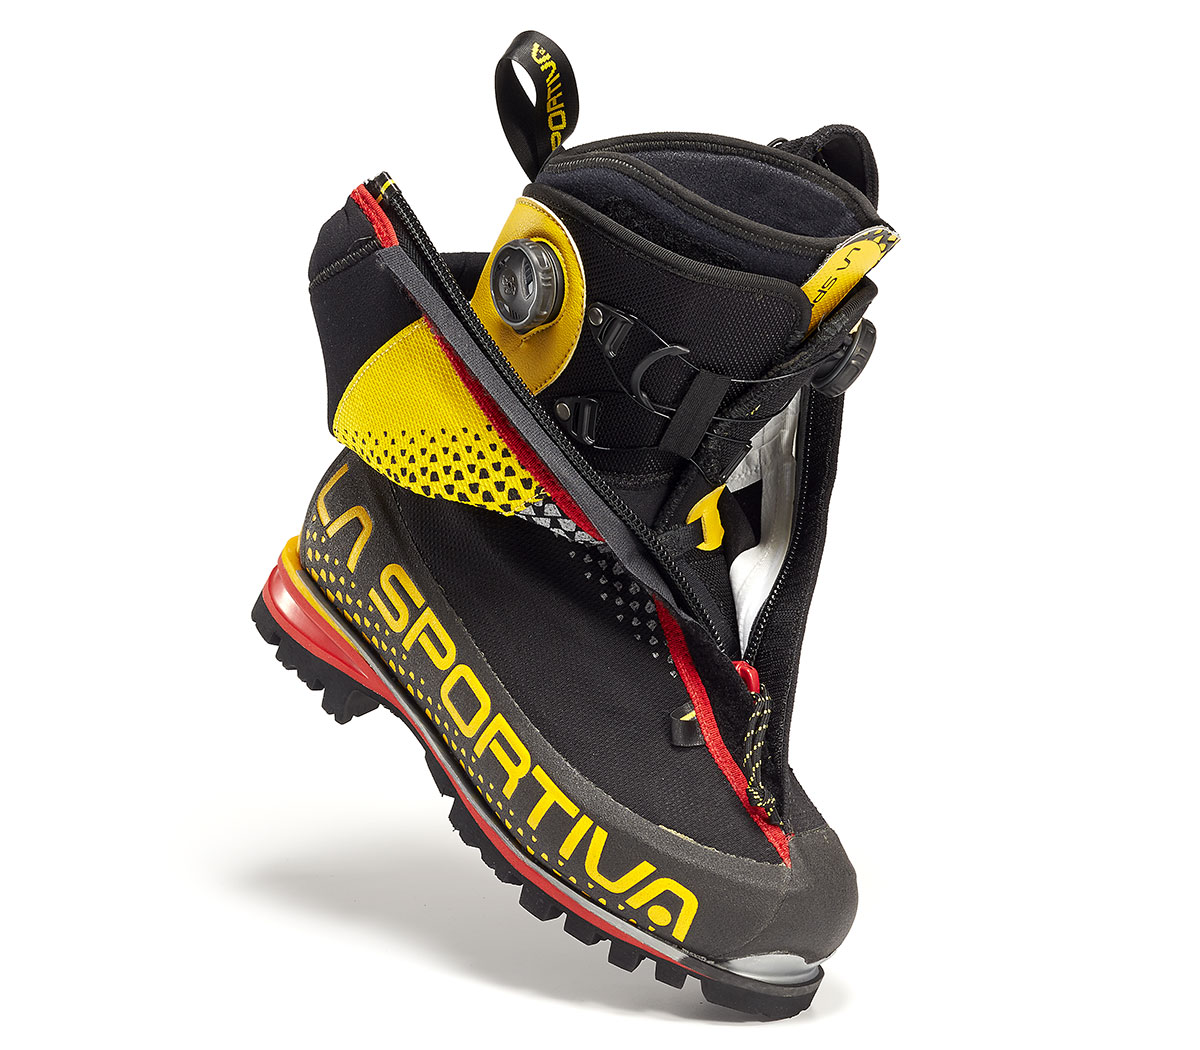 The La Sportiva G2 SM Boa Fit mountaineering boots: the Boa Fit System was built for mountaineering as if our lives depended on it – delivering superior heel hold and stability, secure comfort, and effortless precision in bitter, biting conditions.